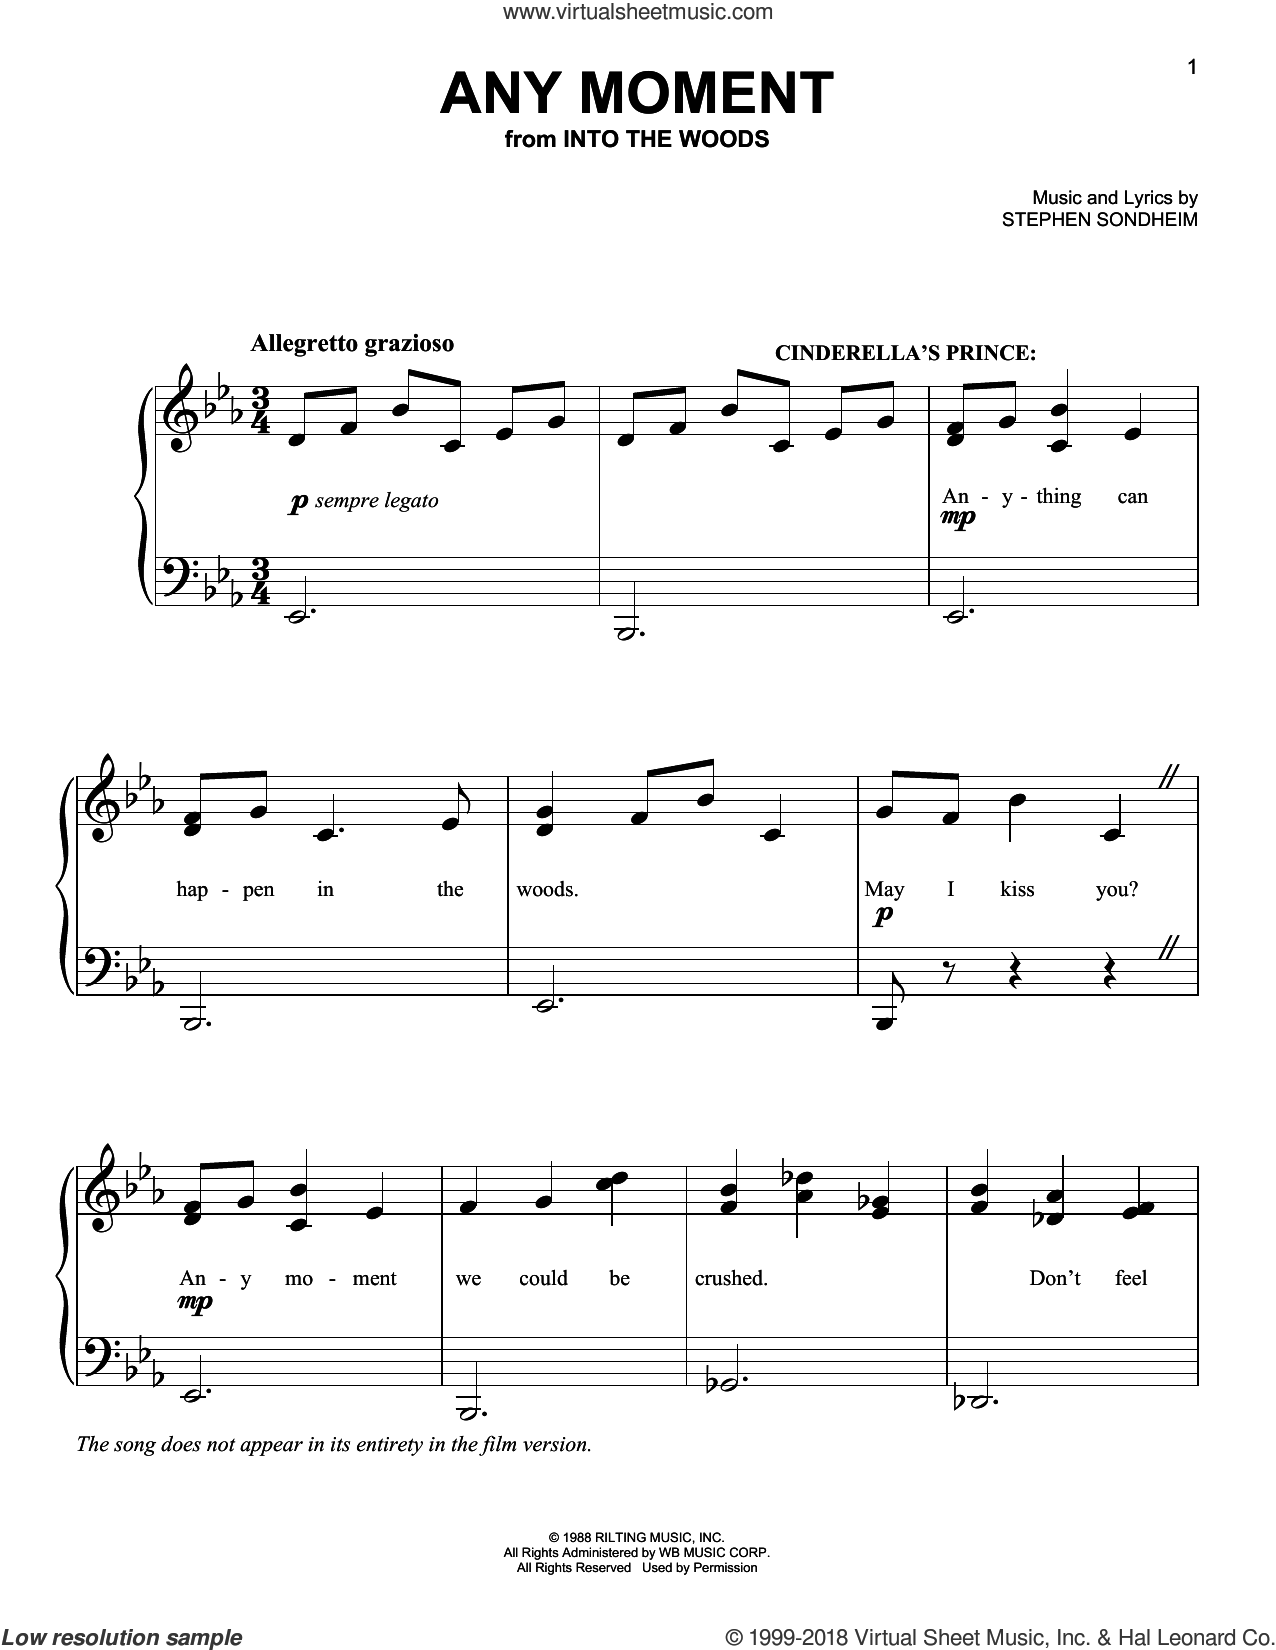 Any Moment - Part I sheet music for piano solo by Stephen Sondheim. Score Image Preview.